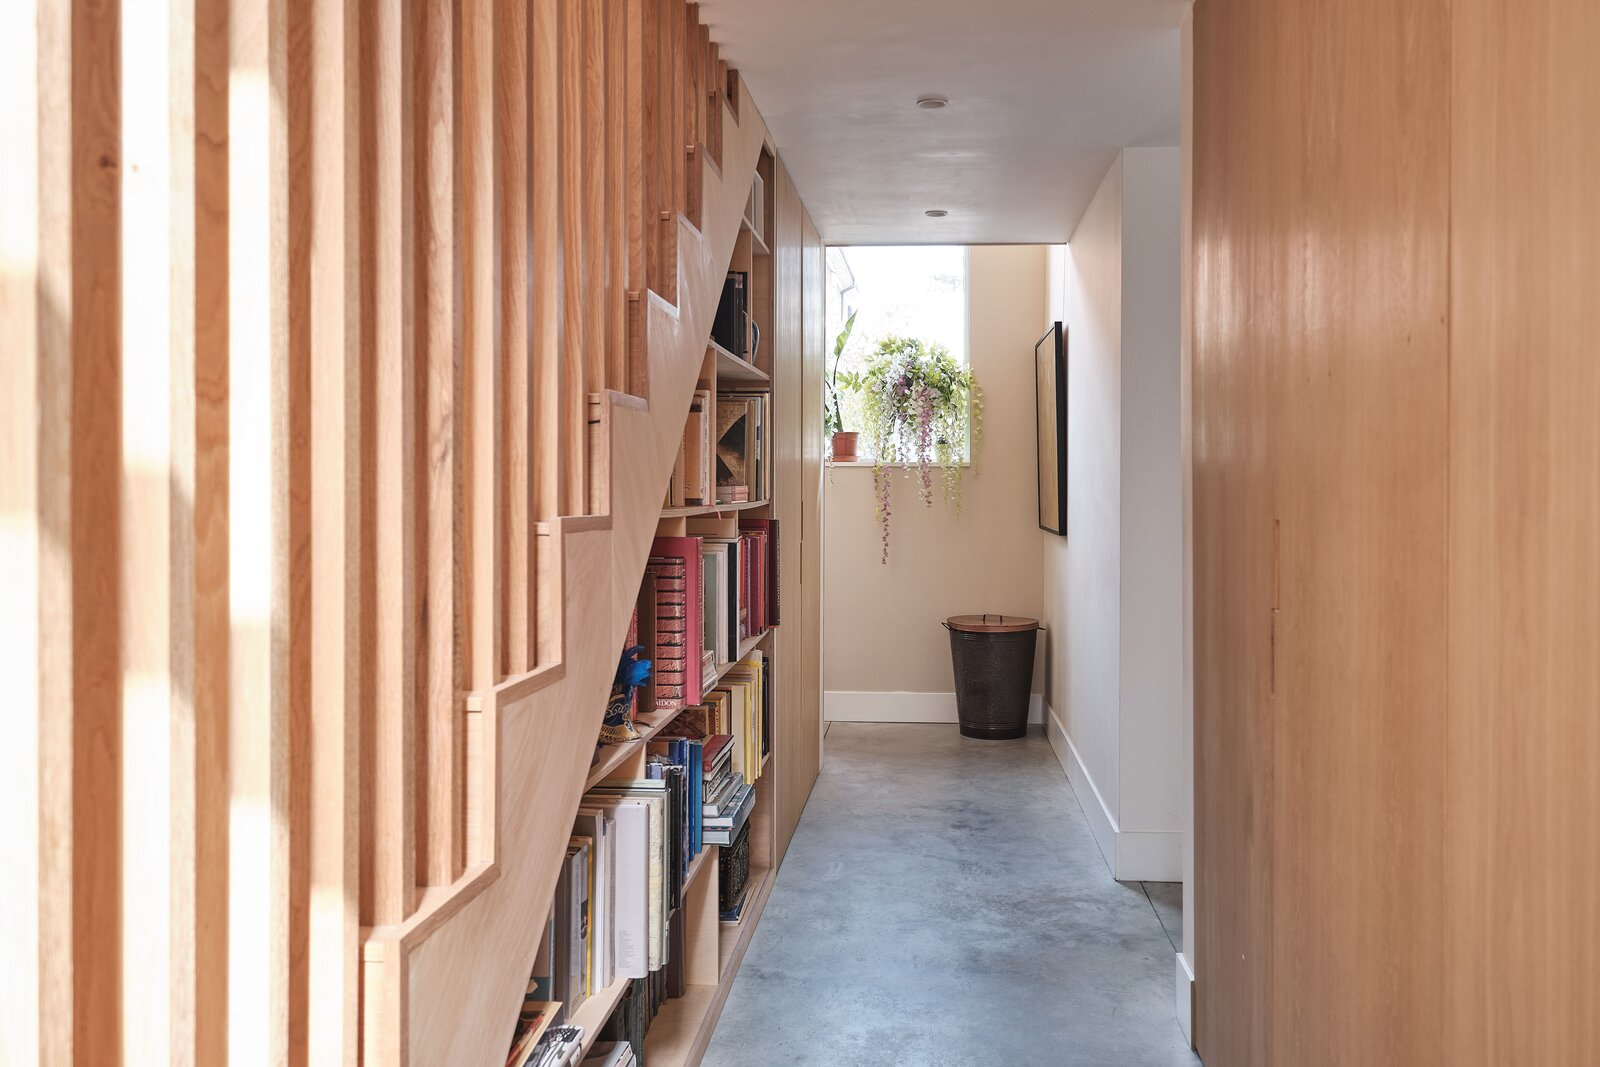 Bespoke shelving and storage line a hallway behind the kitchen that leads to the bedrooms.  Photo 10 of 14 in This Former Chapel, Now a Heavenly Artist's Studio and Home, Lists for £1.6M